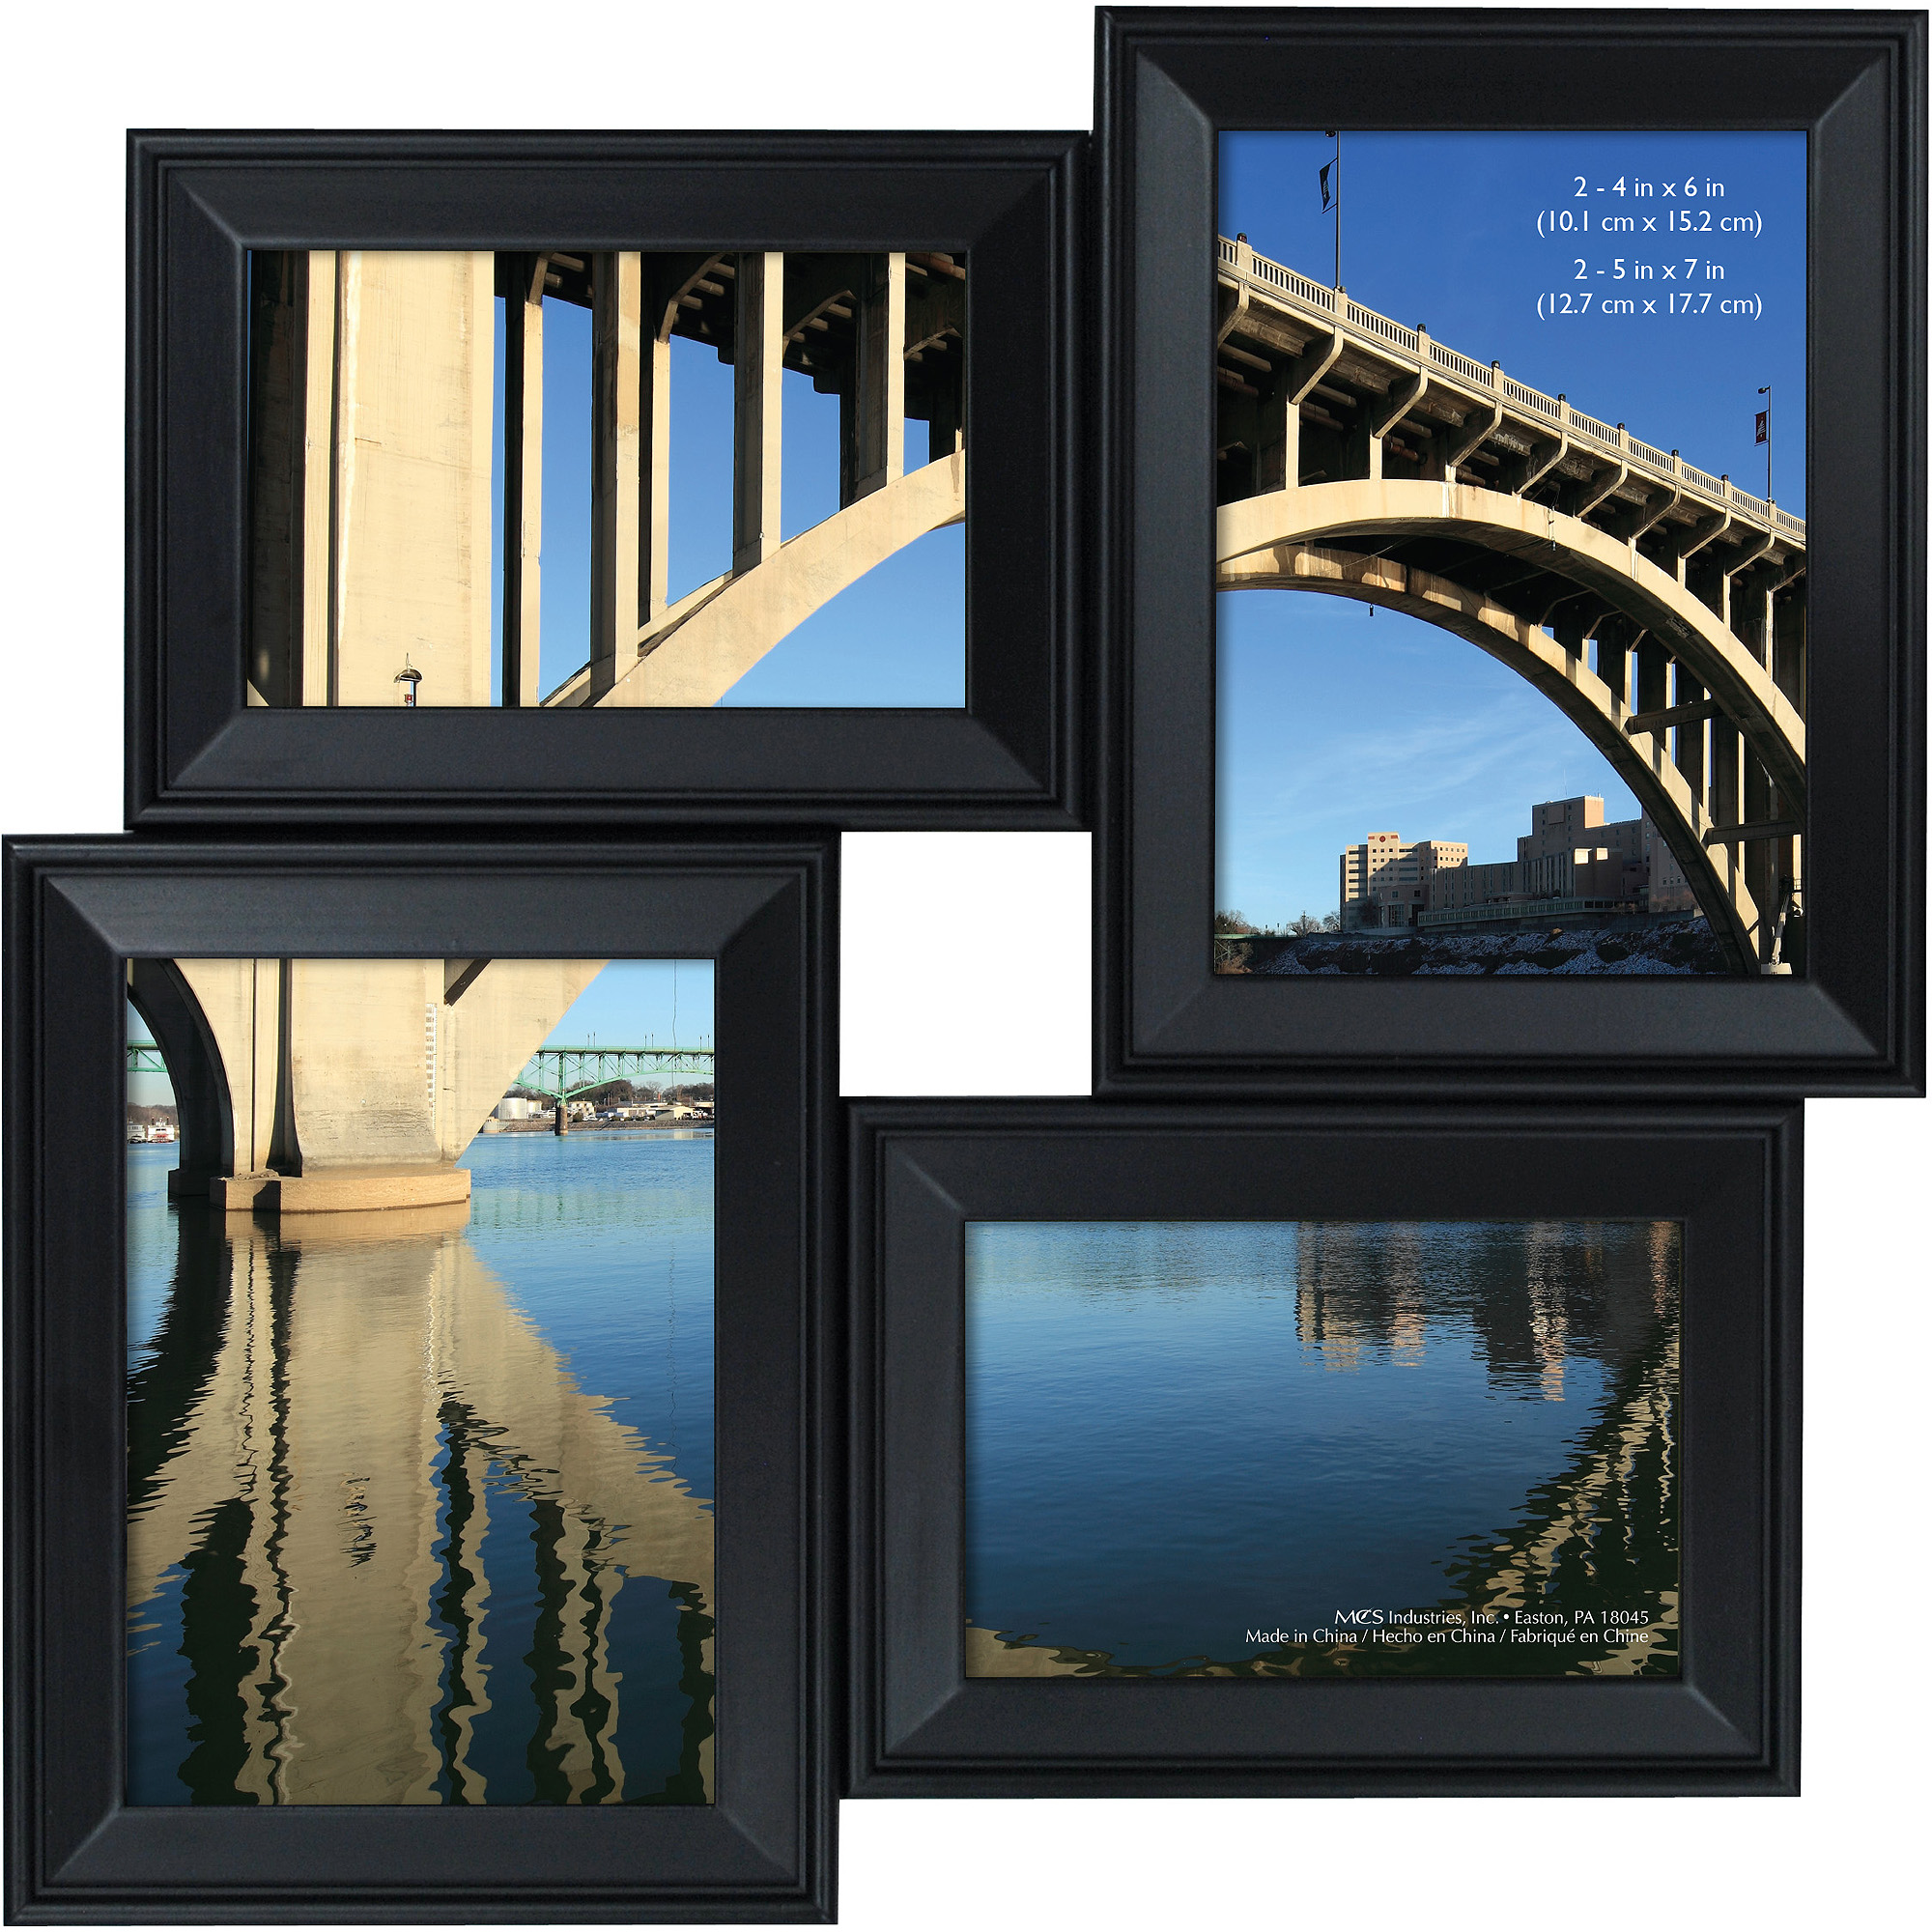 Canopy Black 4 Opening Collage Frame 2-4 - Walmart.com